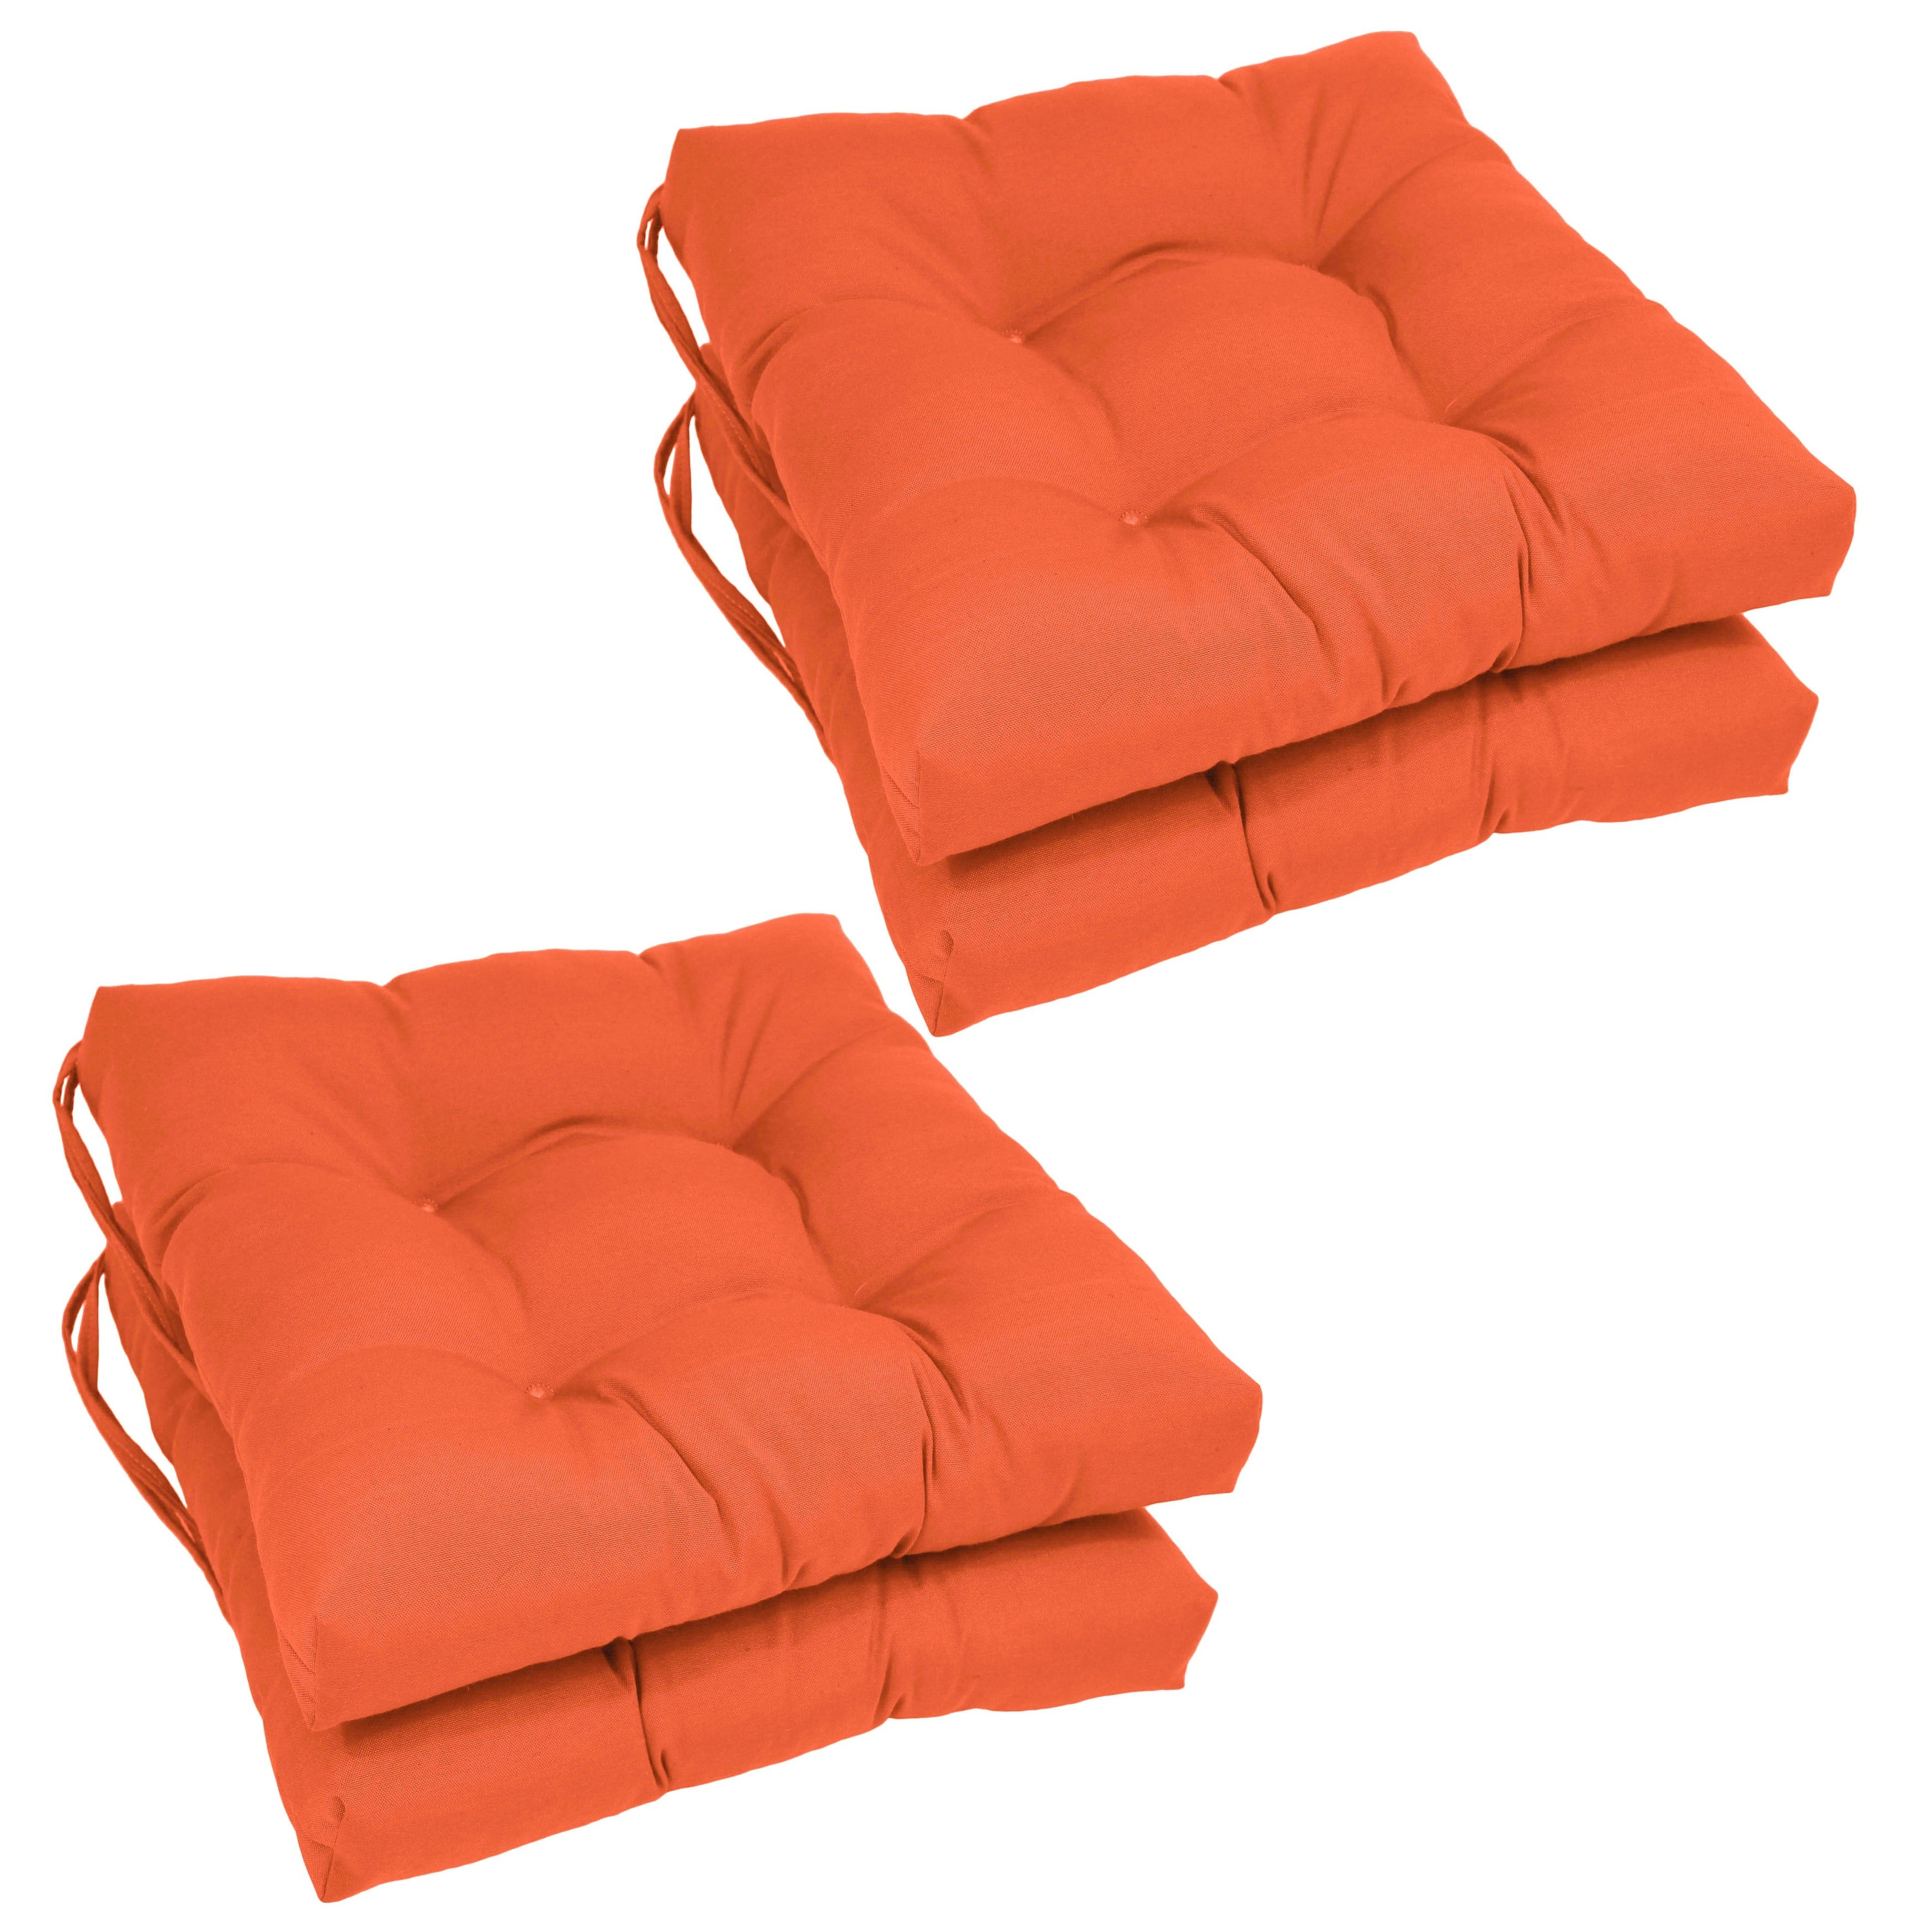 squared of square set inch outdoor needles blazing solid x polyester chair baed itm cushions spun